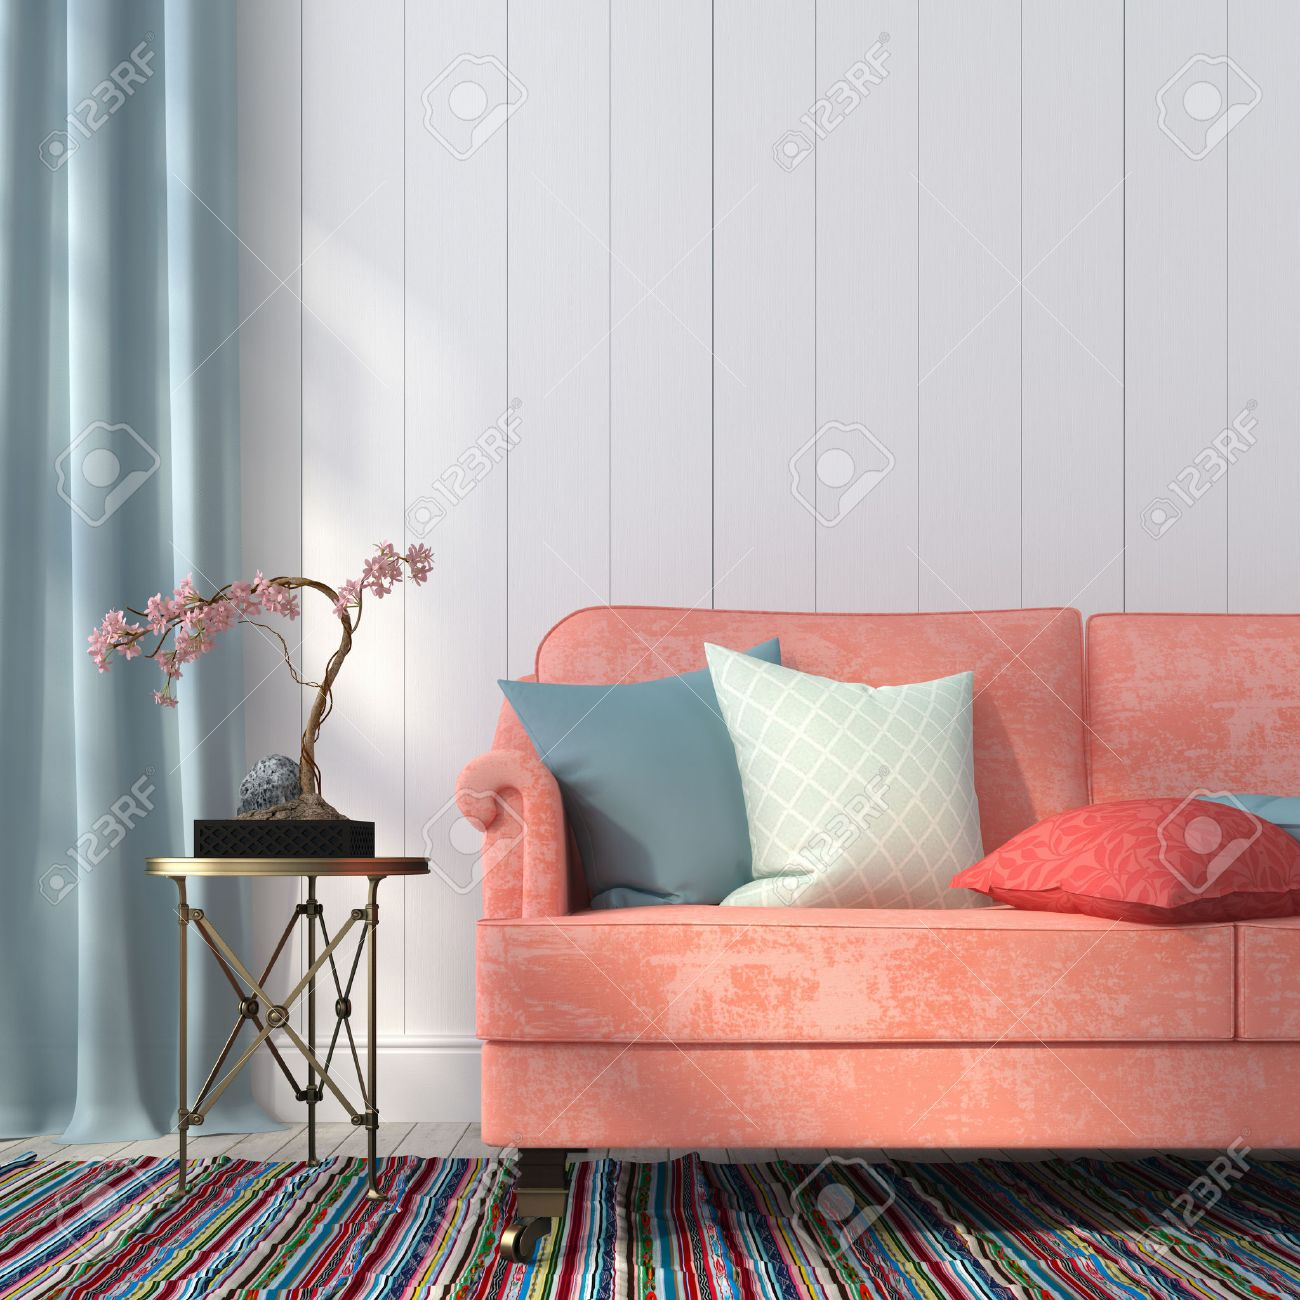 Classic Salmon Colored Sofa And Gilded Table On The Background Of A Wall  Paneled Wood